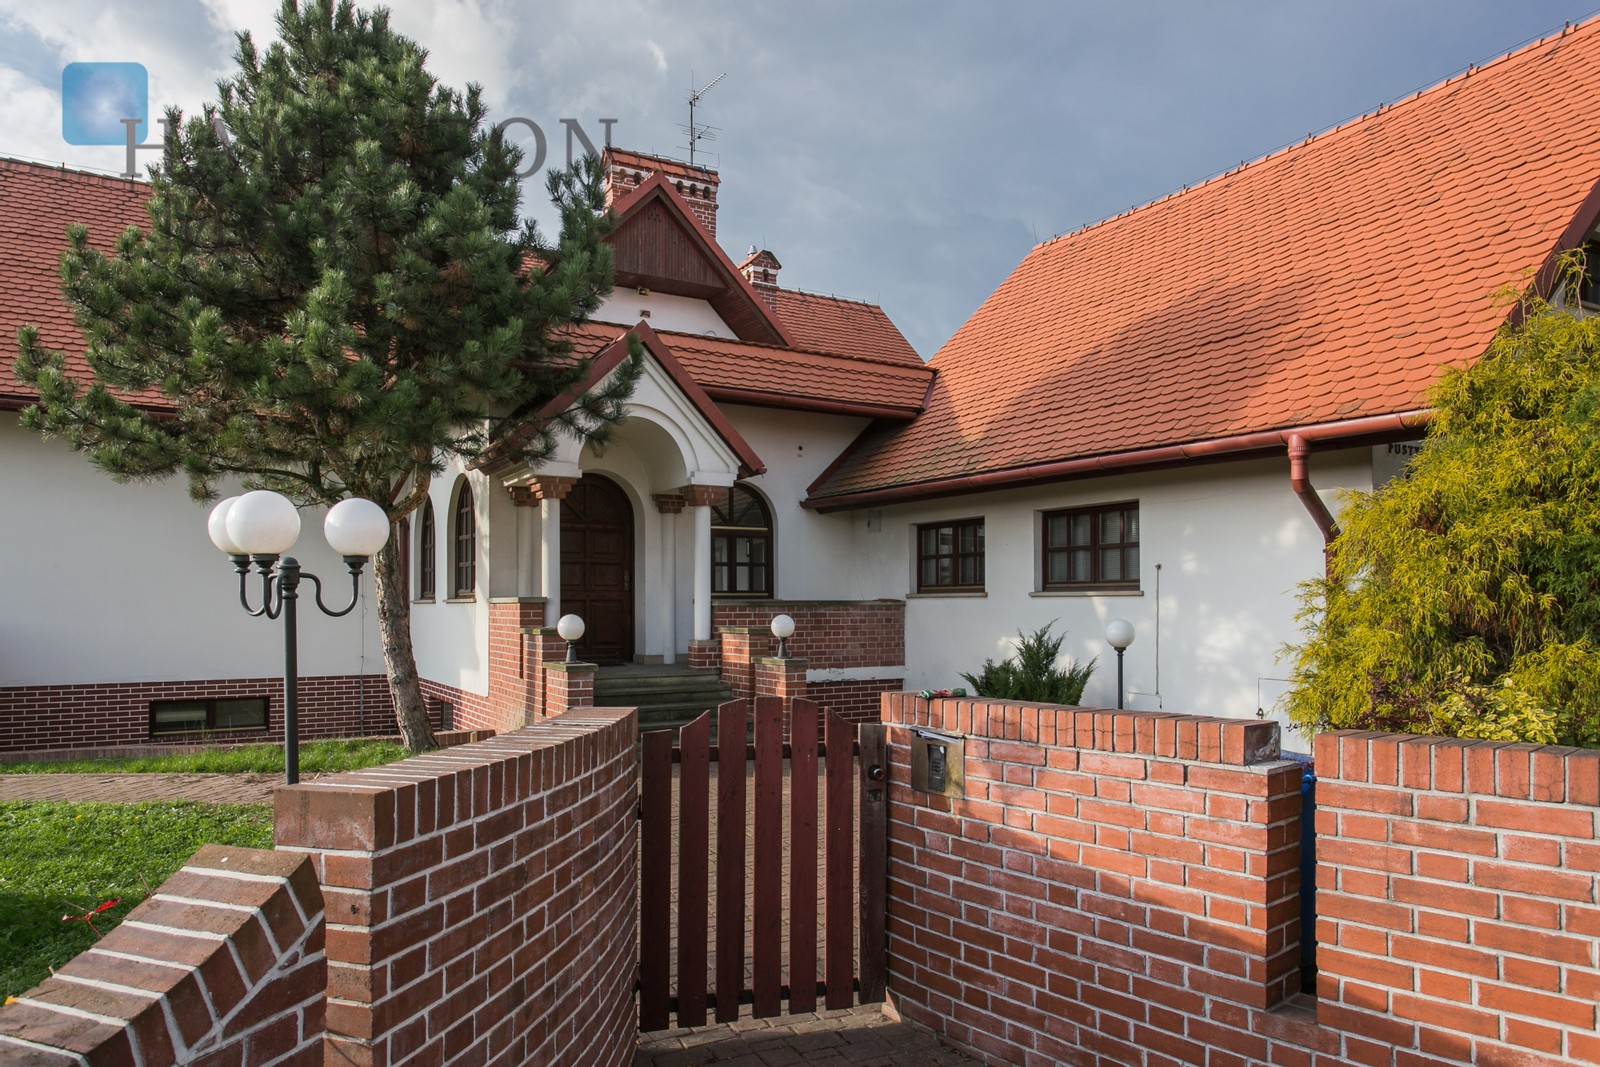 A 5-bedroom house with a large terrace available for sale in a green and quiet neighborhood in Kliny Borkowskie Krakow for sale